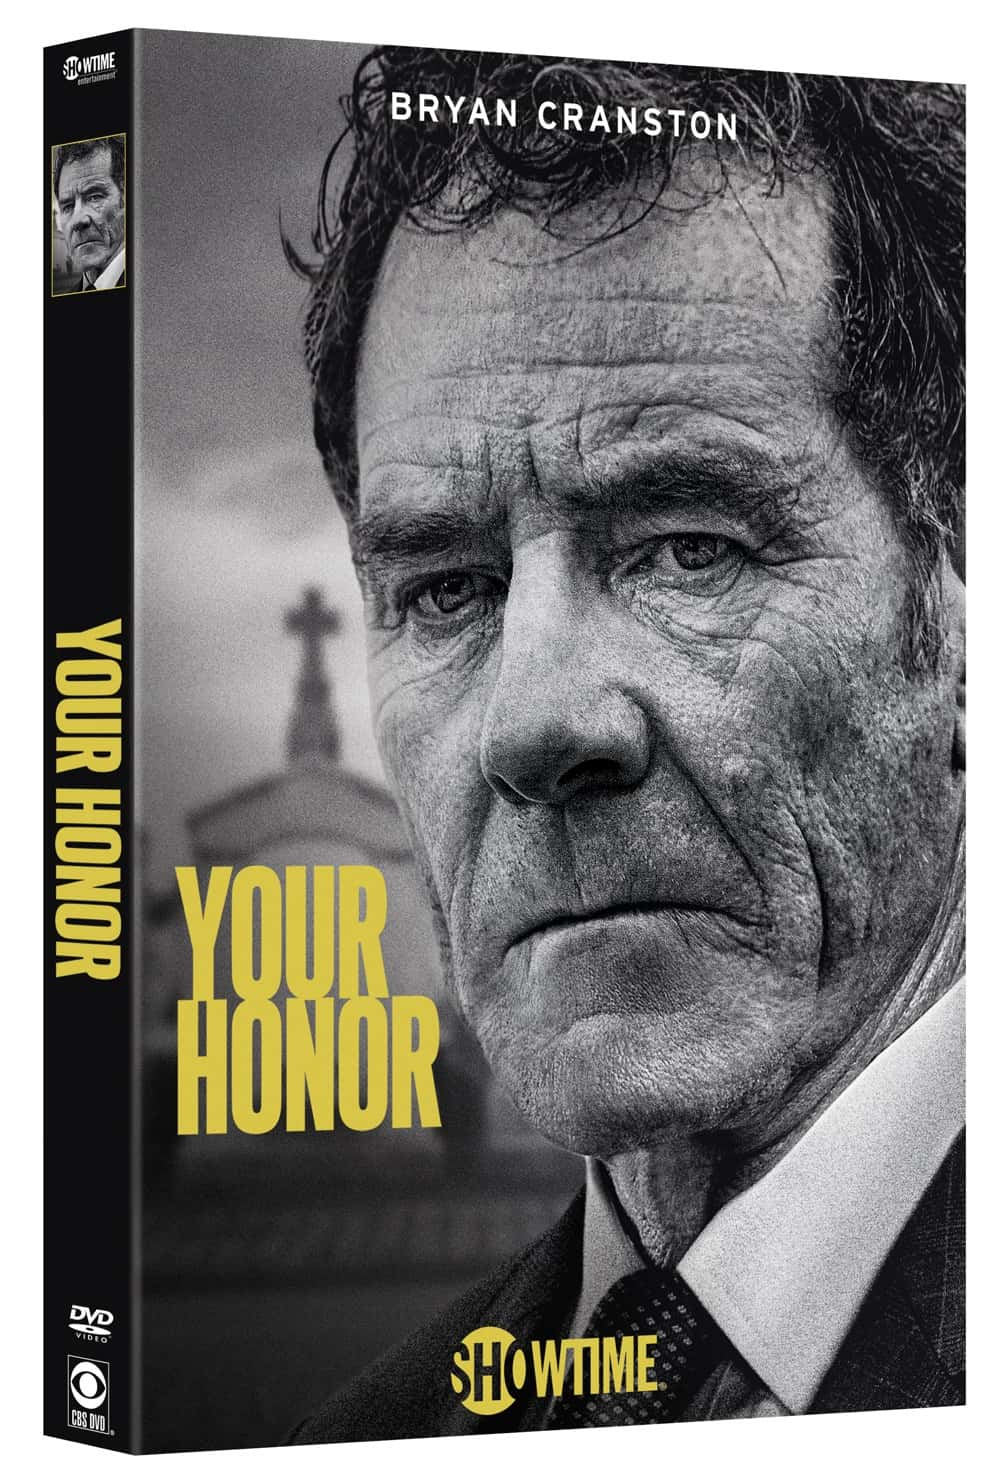 Your Honor DVD Cover